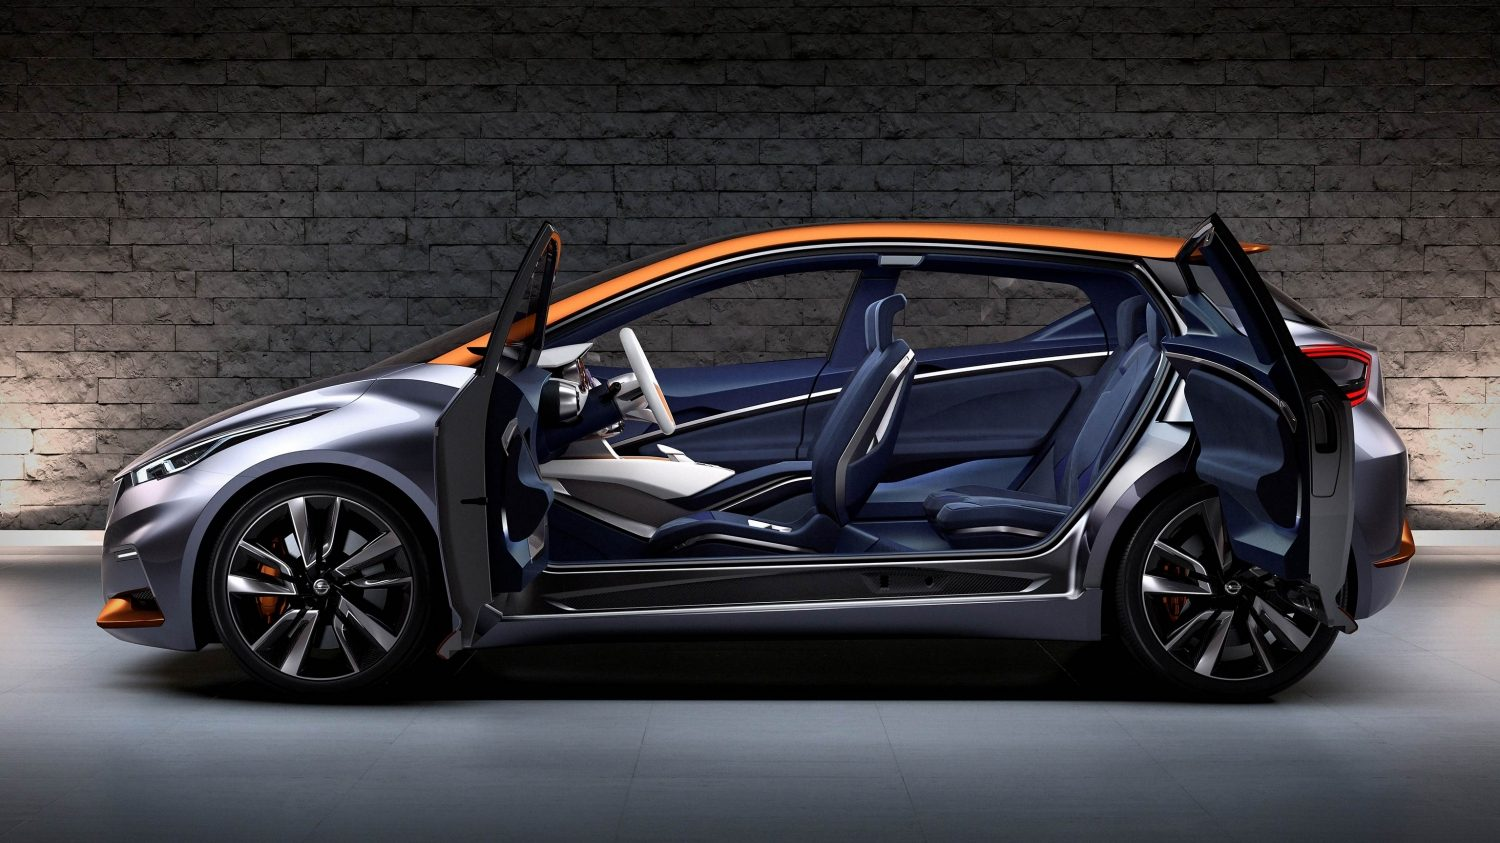 Experience Nissan - Concept car - Sway - profile